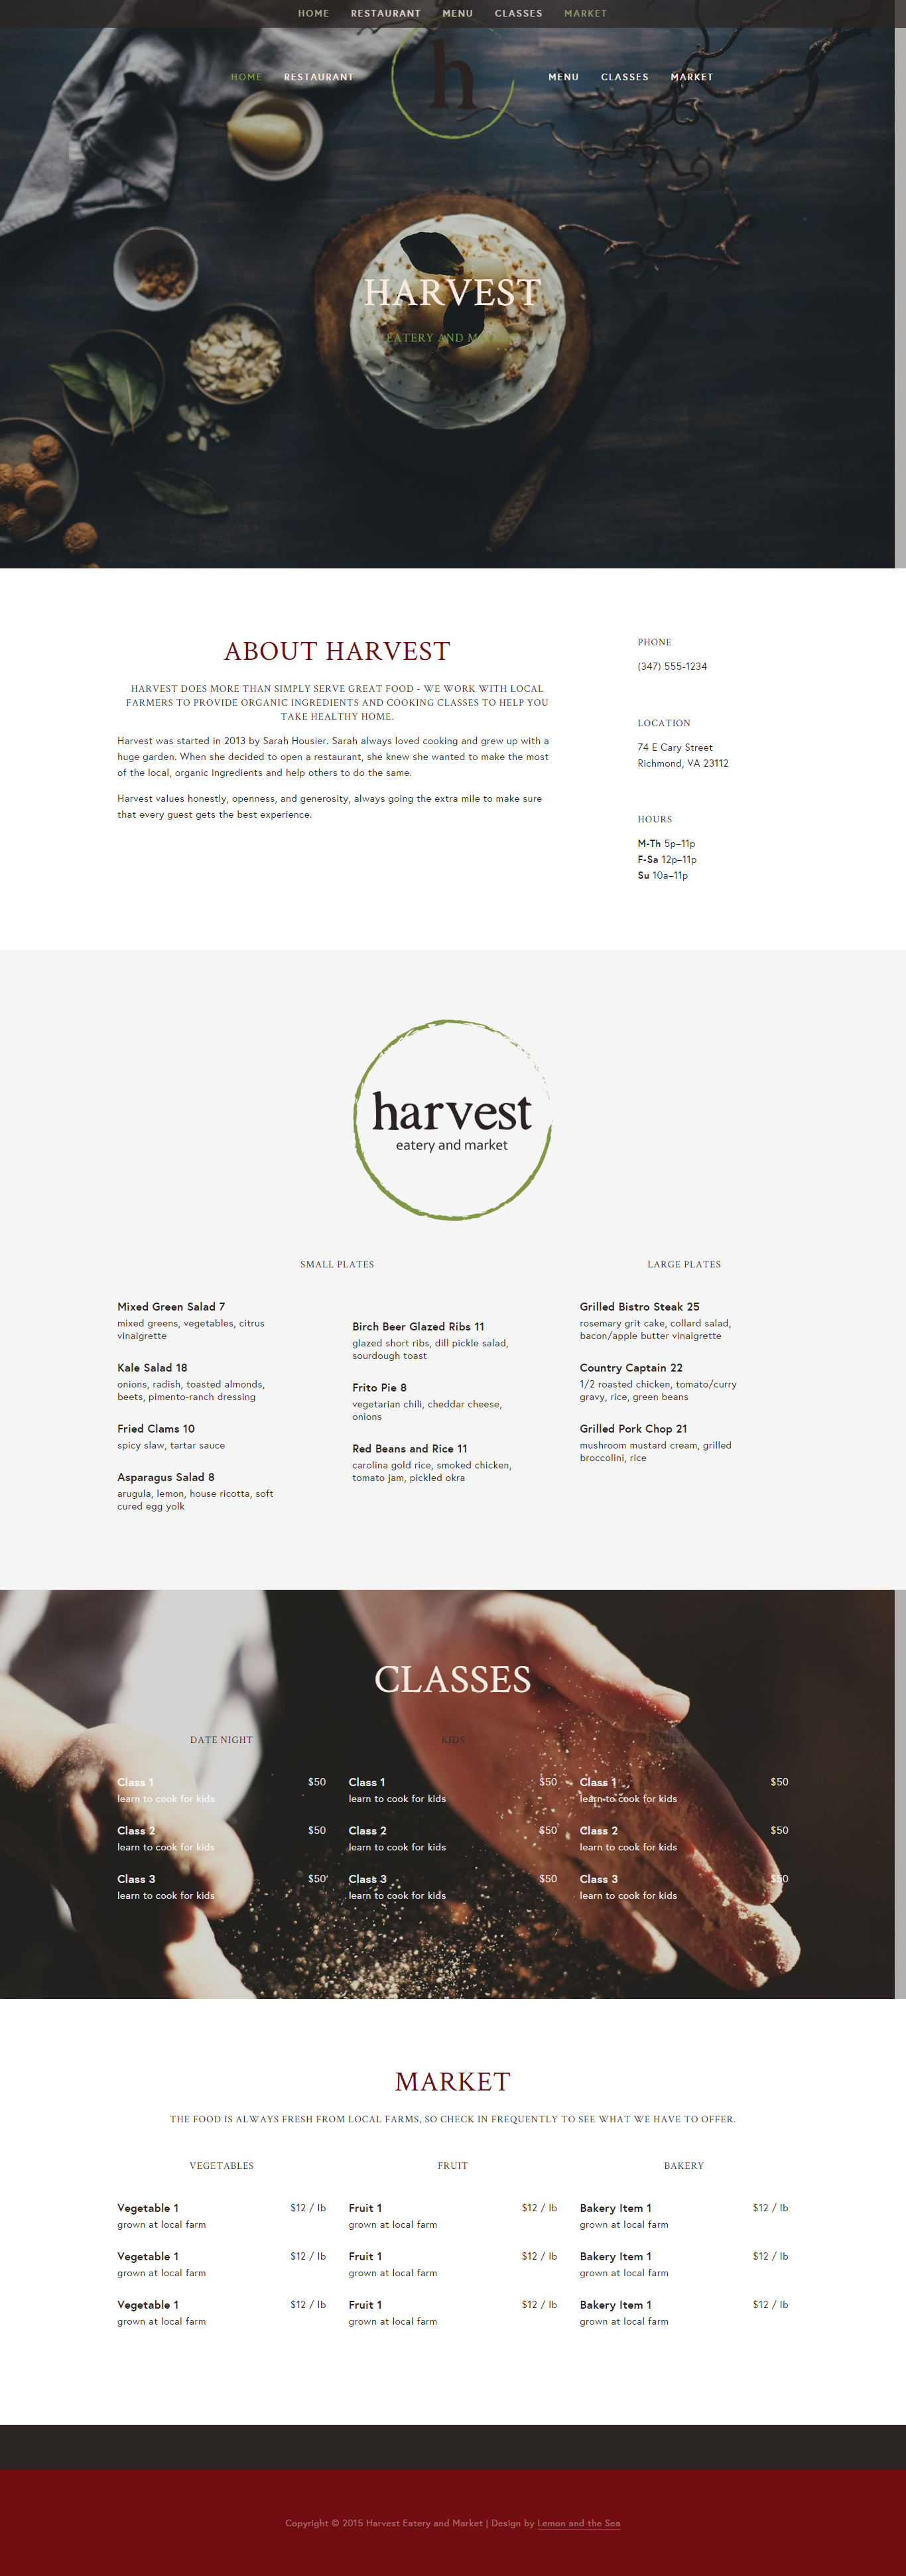 Harvest Eatery and Market | Lemon and the Sea: Website for Harvest designed on Squarespace featuring warm colors, beautiful images, and everything a restaurant website needs to attract customers.